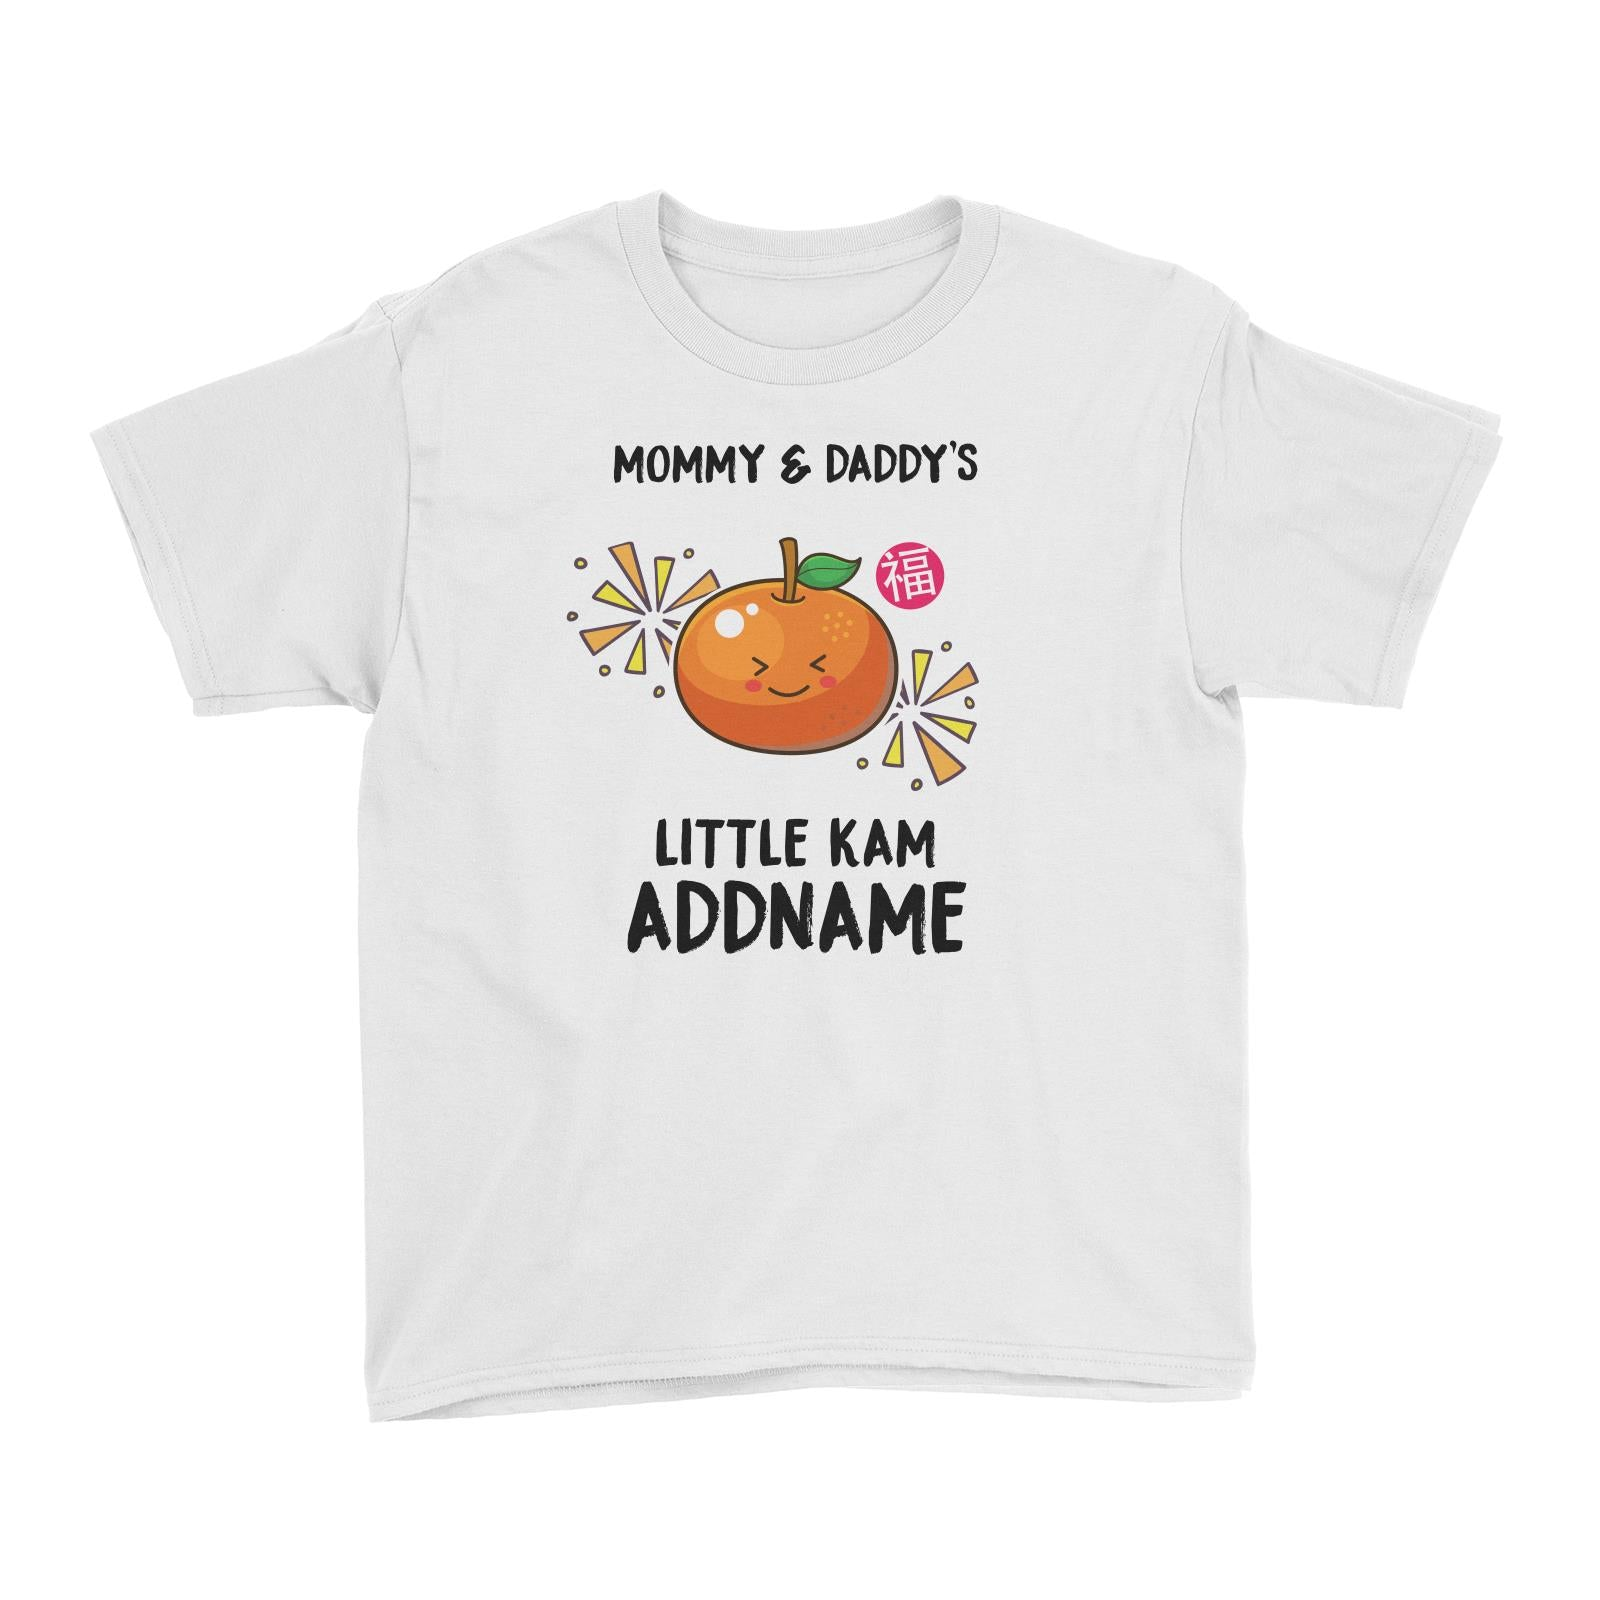 Chinese New Year Mommy and Daddy's Little Kam Kid's T-Shirt  Personalizable Designs